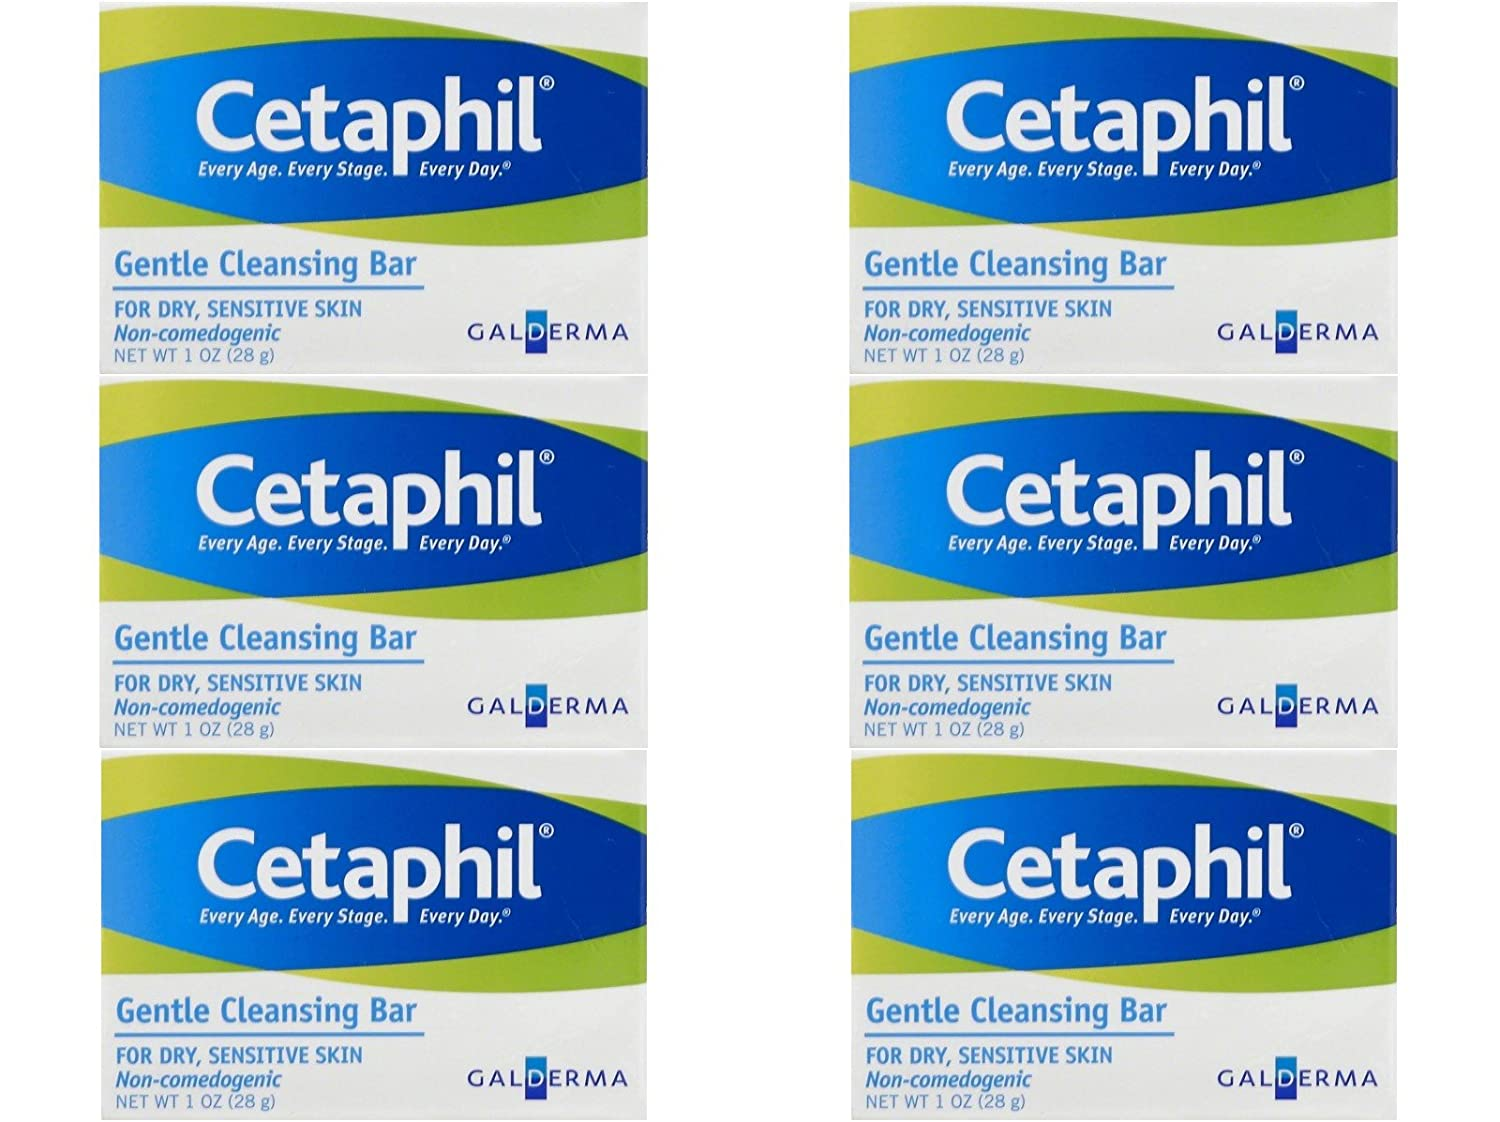 Cetaphil Gentle Cleansing Bar For Dry Sensitive Hypoallergenic 1 Oz Travel Size (Pack of 6)